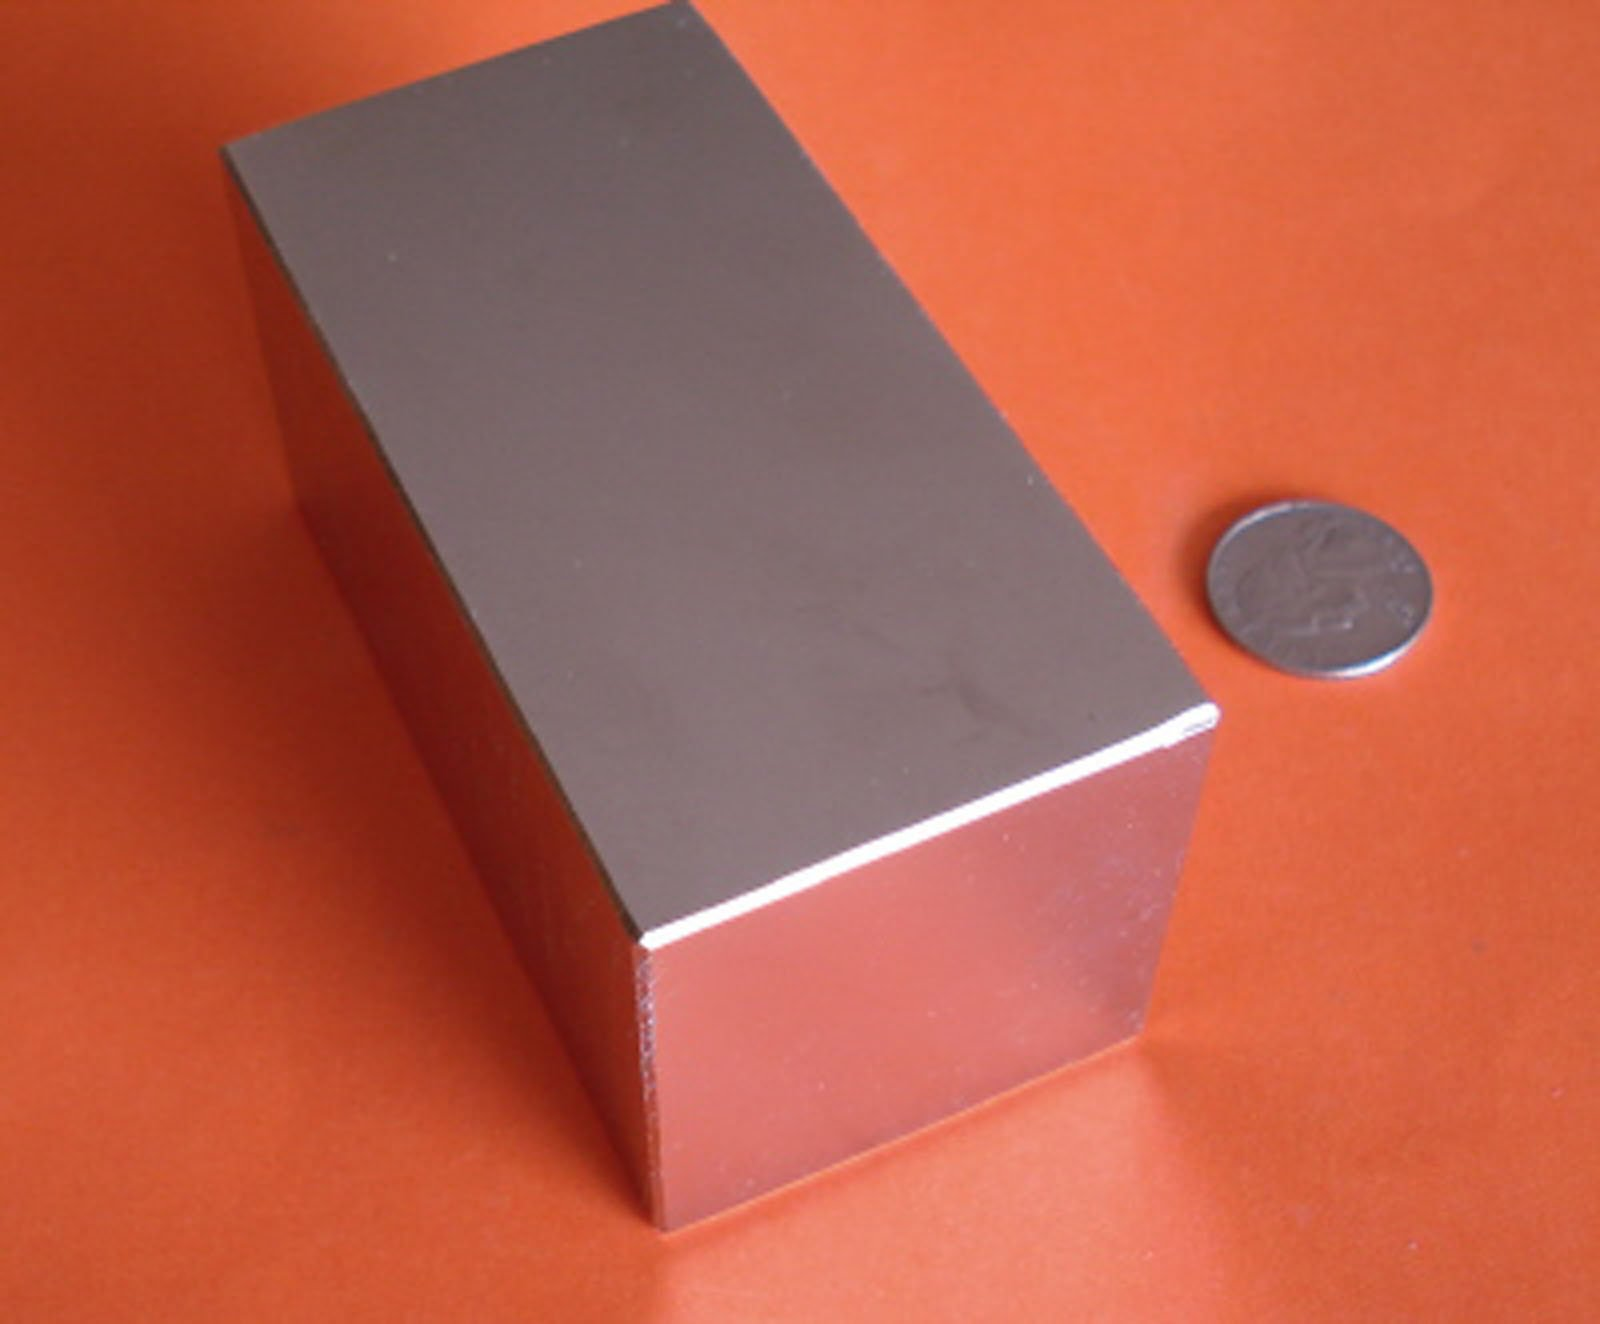 Super Strong Neodymium Magnet N48 4 x 2 x 2'' Permanent Magnet Bar, The World's Strongest & Most Powerful Rare Earth Magnets by Applied Magnets